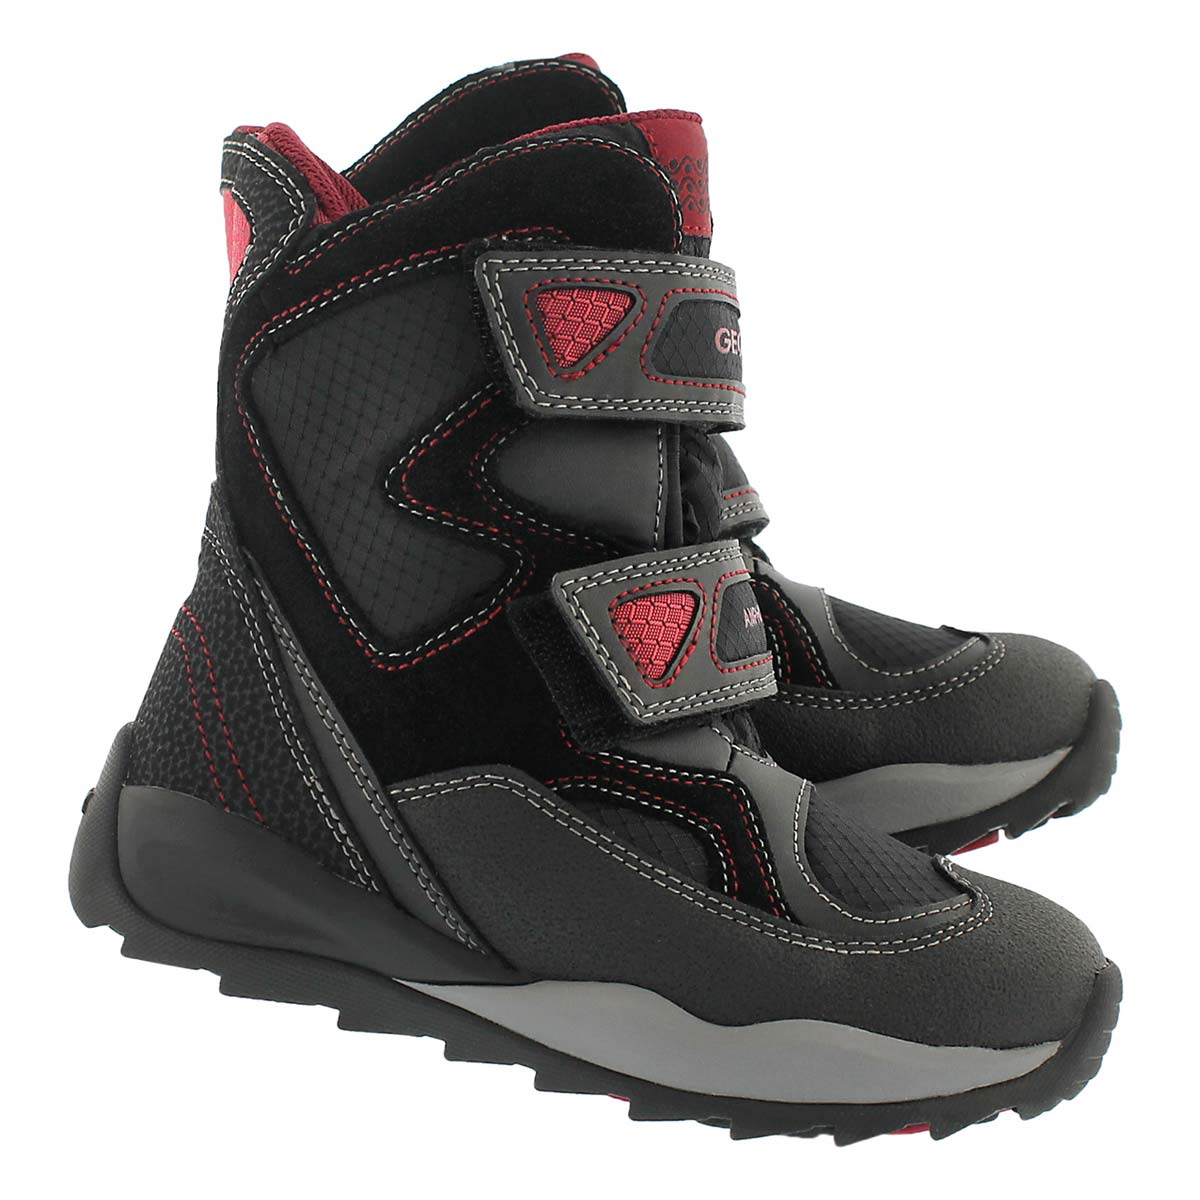 Bys Orizont blk/red wtpf winter boot